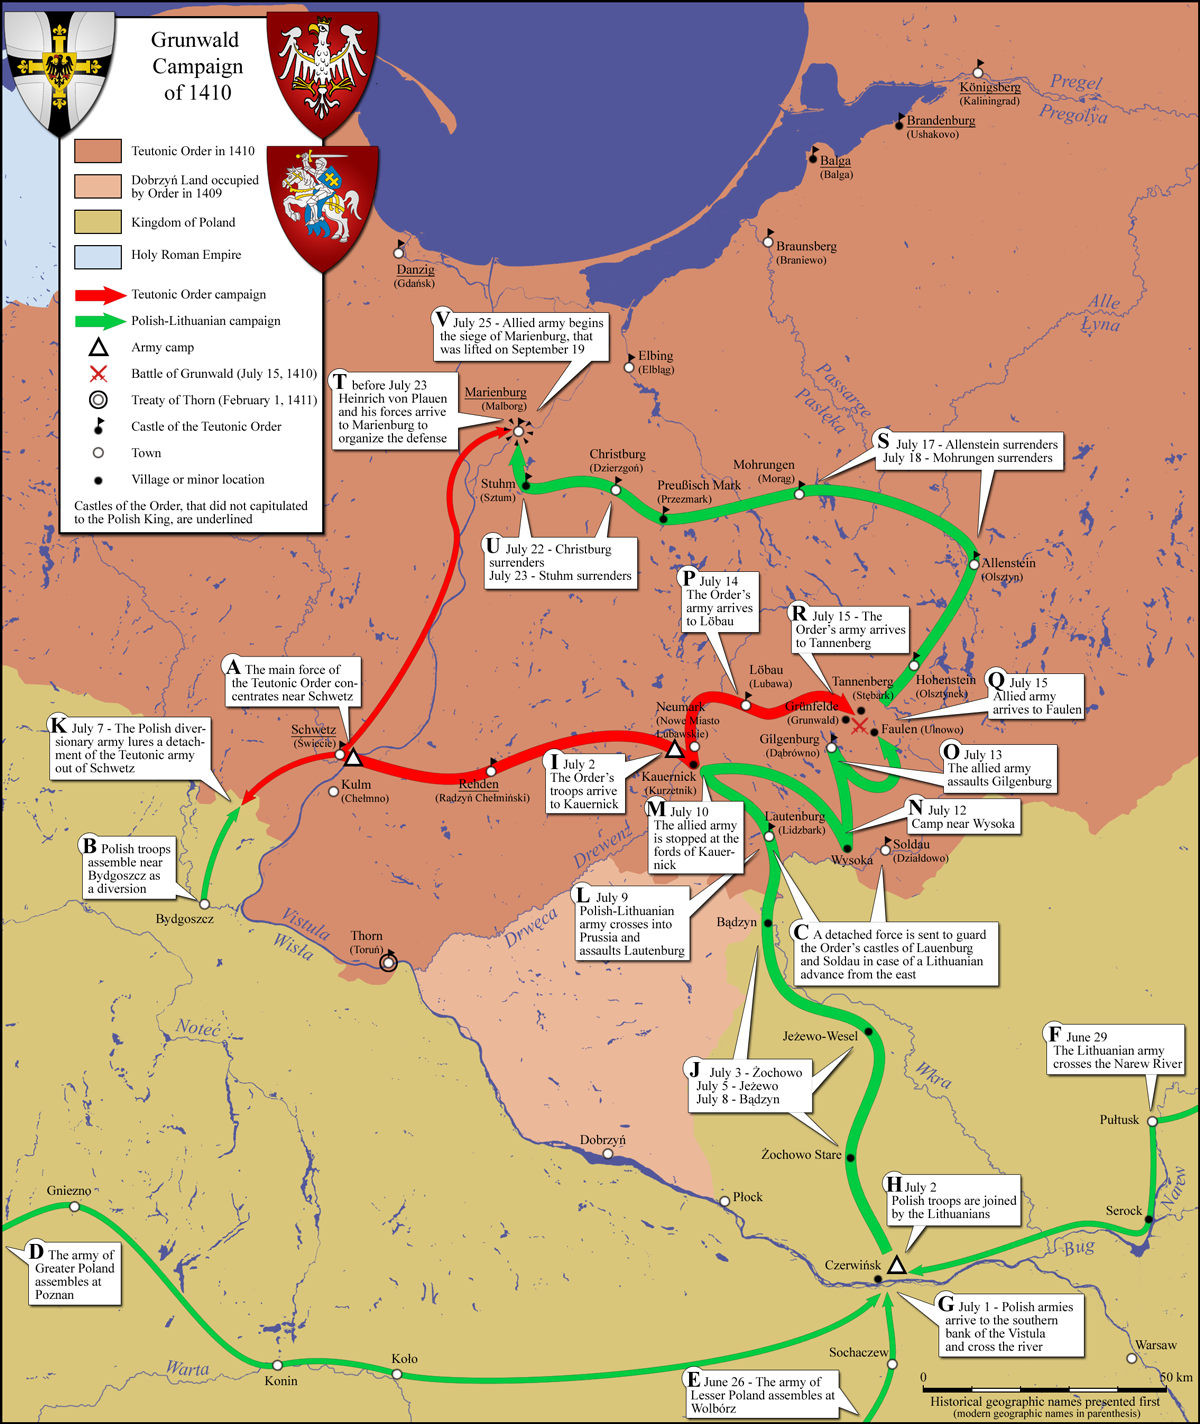 map of army movements during the Grunwald campaign